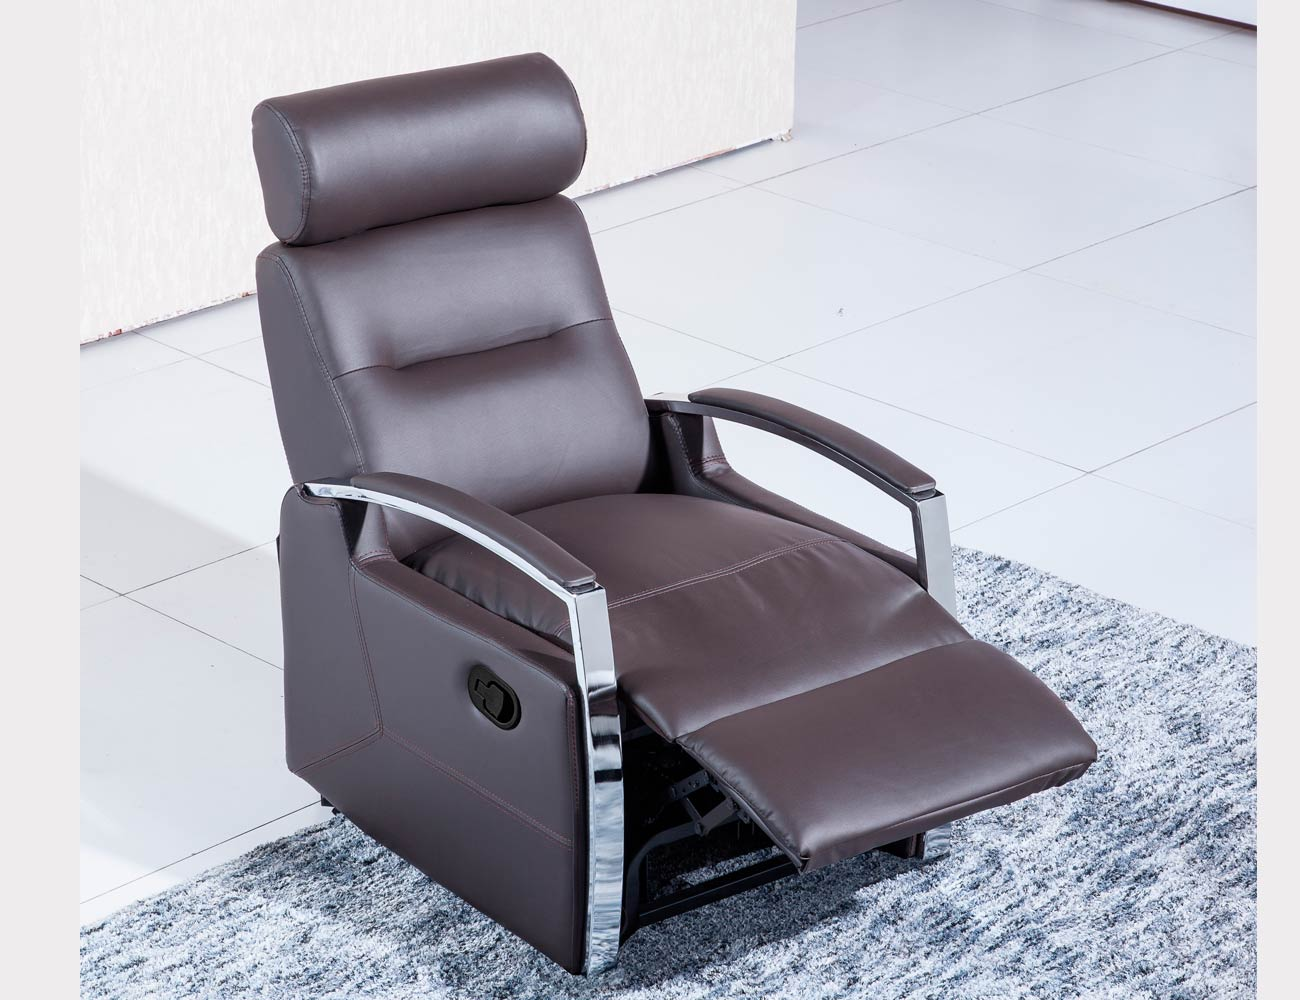 Sillon relax palanca simil piel chocolate 21